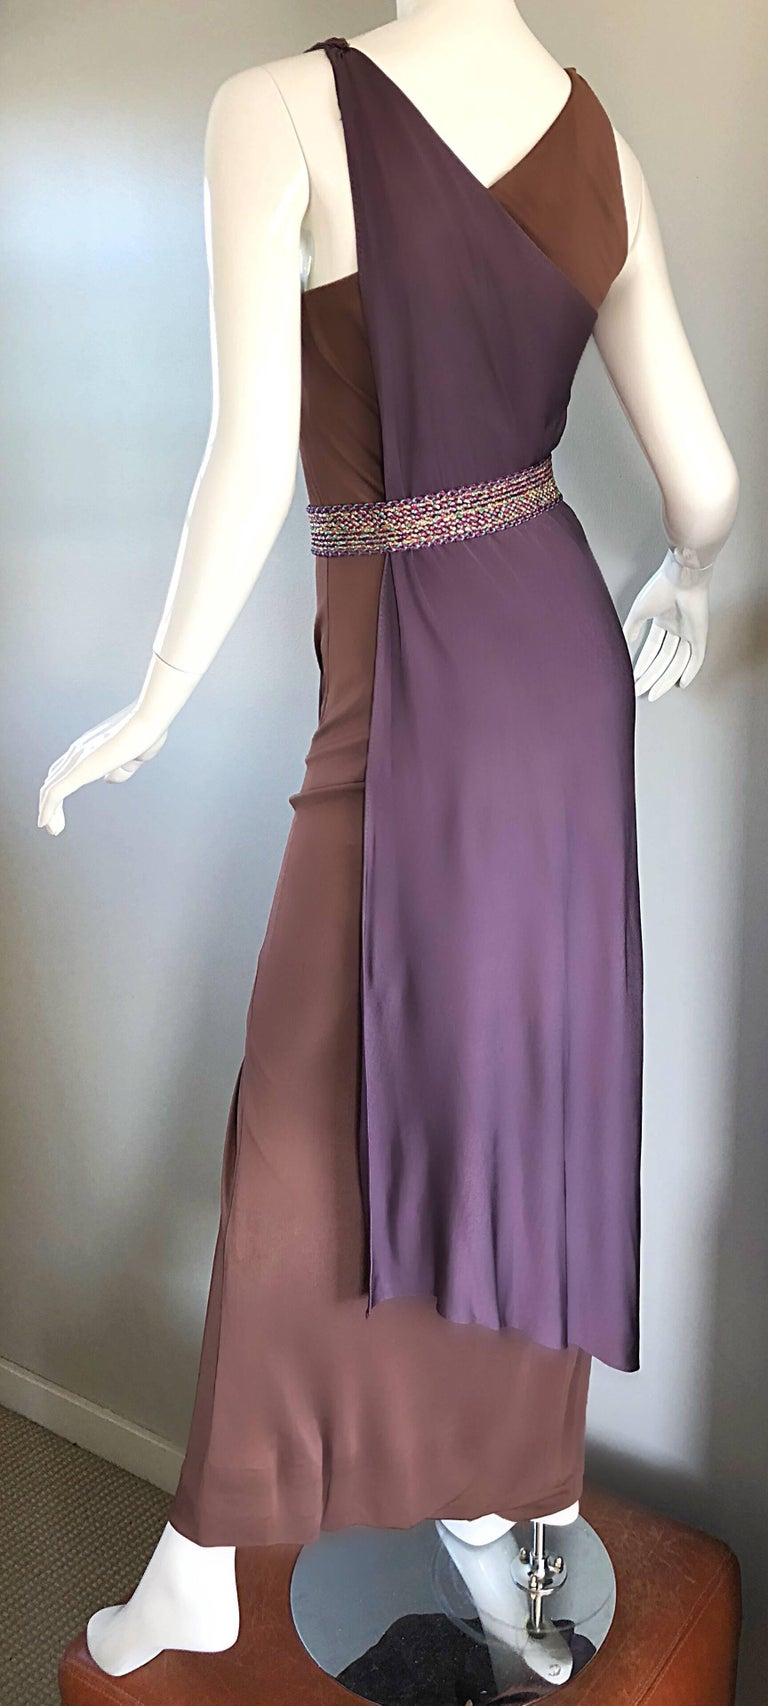 Vintage Bill Blass 1970s Purple + Brown Grecian Inspired Silk Jersey Belted Gown For Sale 3